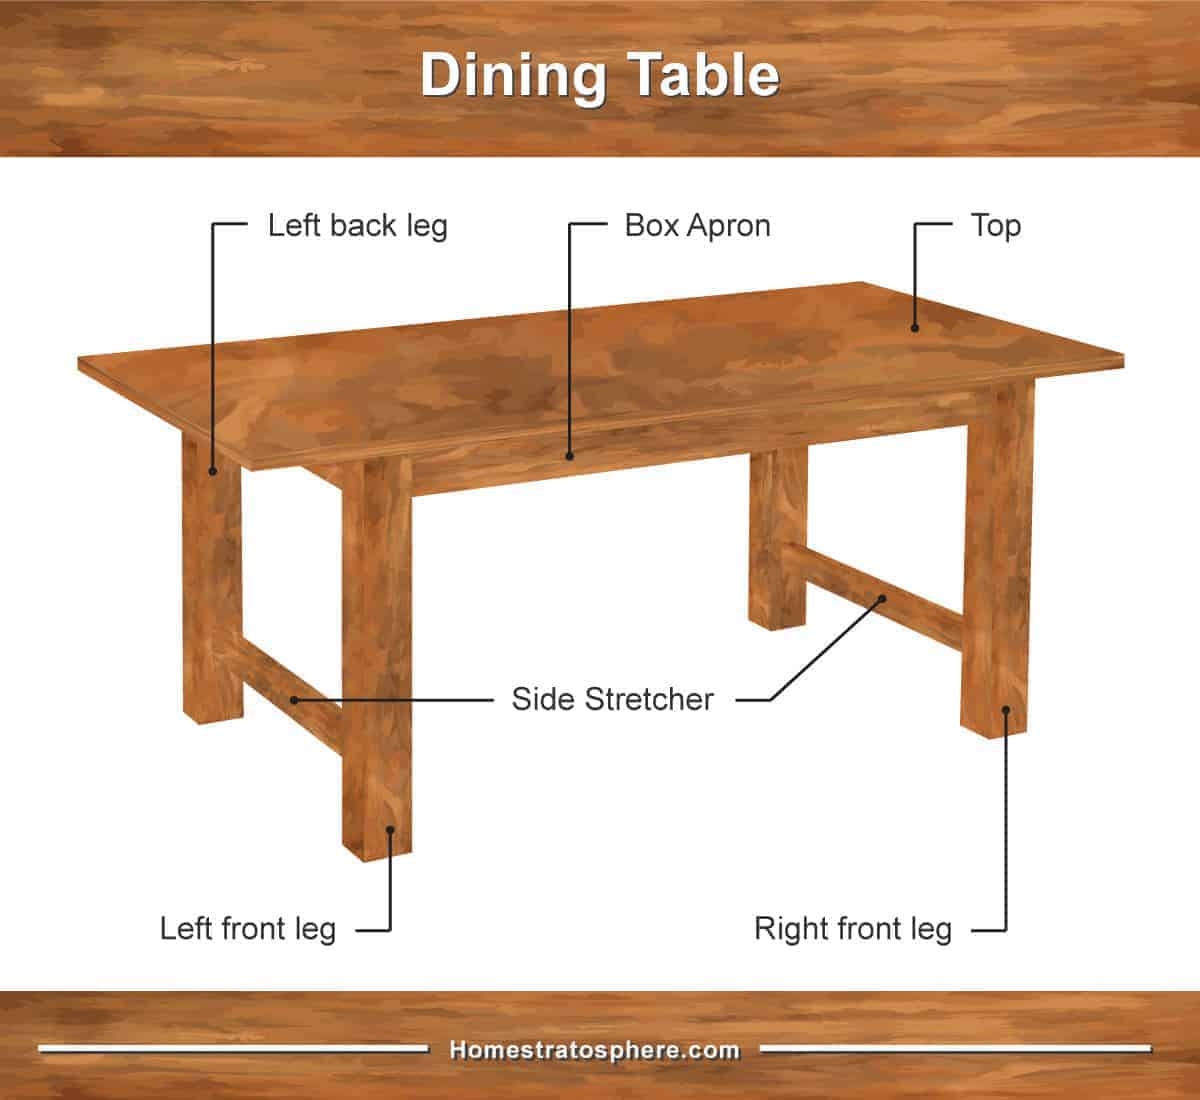 Parts of a dining room table - diagram